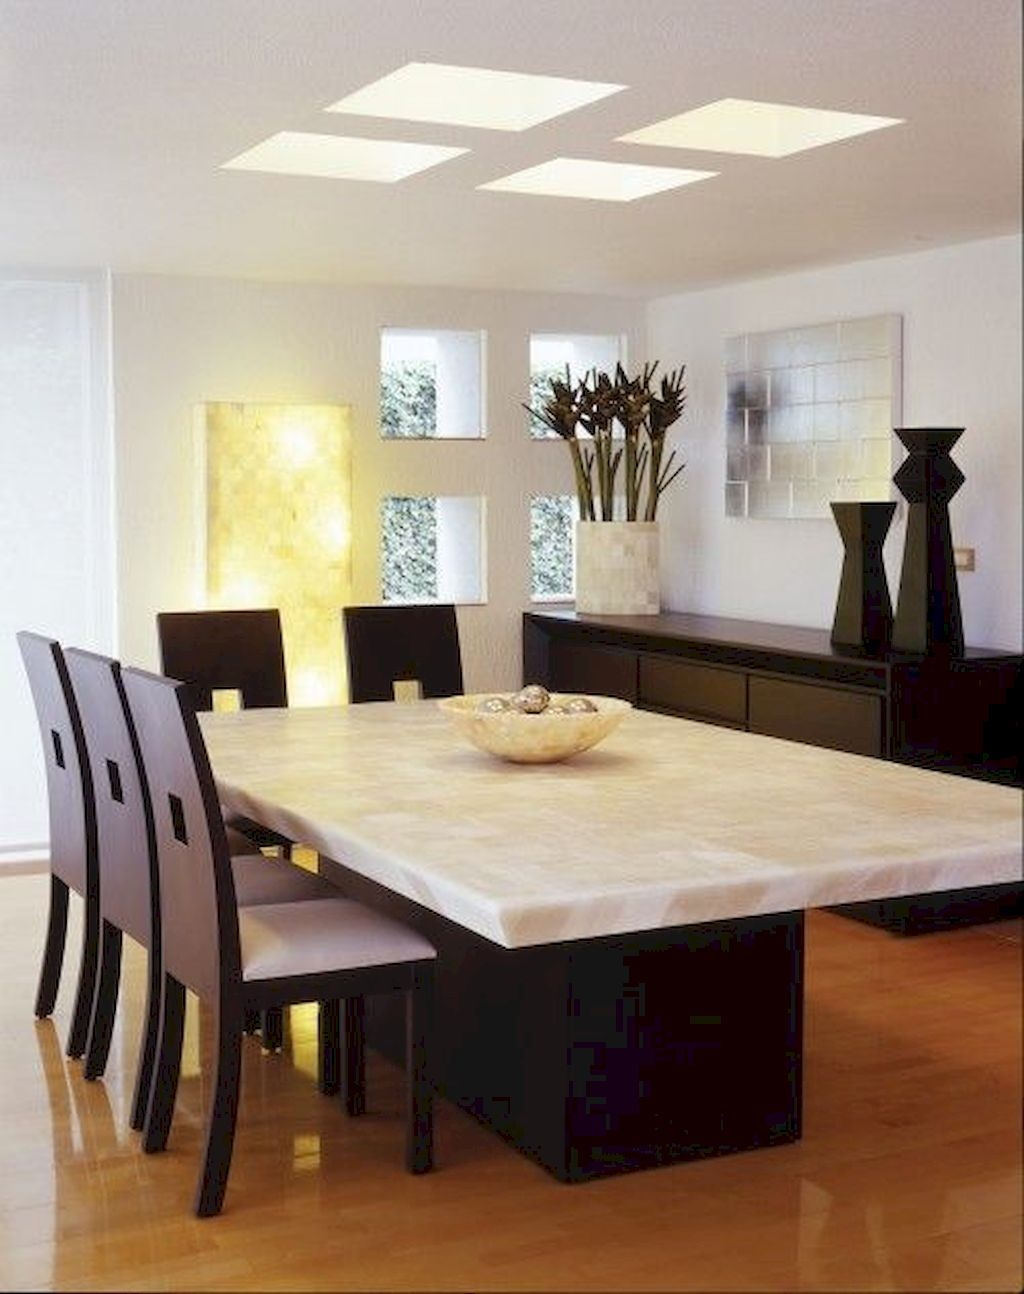 38 Dining Table Ideas Dining Table Dining Table Design Dining Room Table